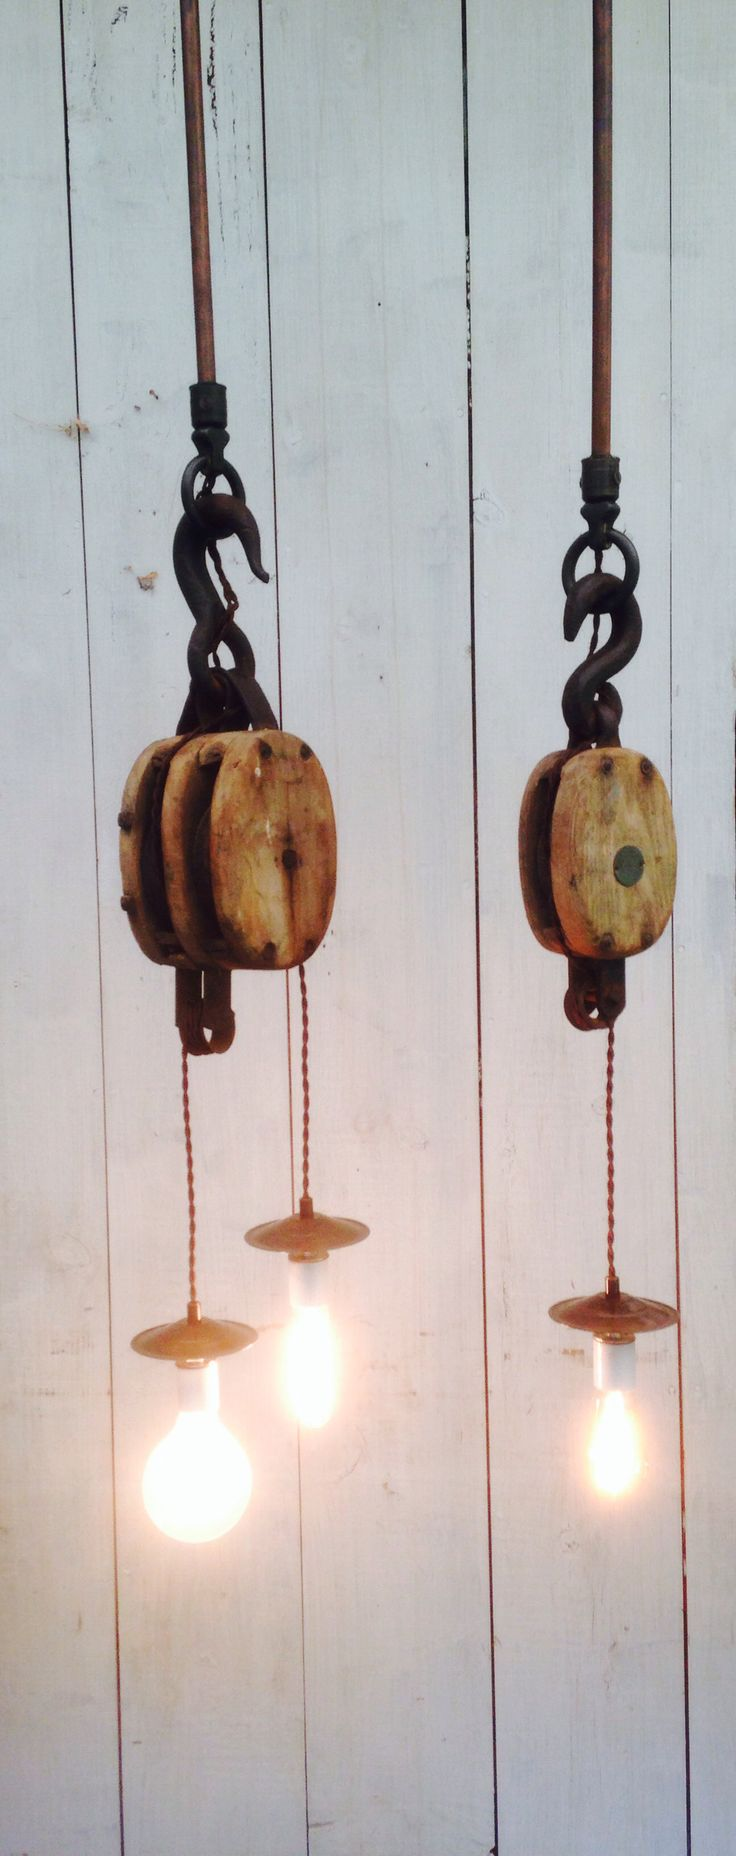 Just finished these barn block and tackle lights with rayon covered wire and copper rods.  Sweet!  High Beams Ltd.